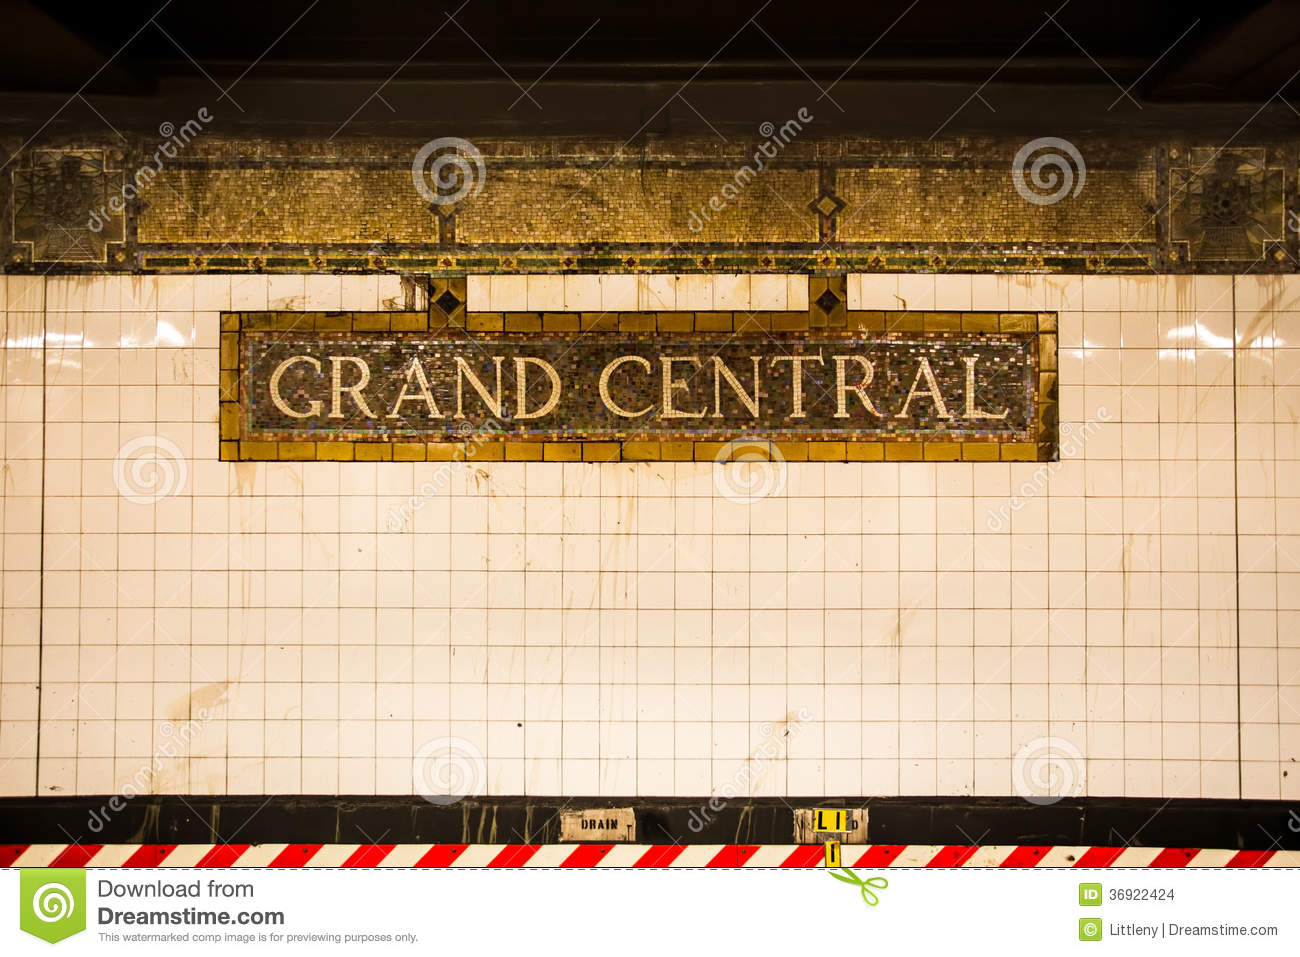 grand central station stock images image 36922424 train track clipart train track clipart images